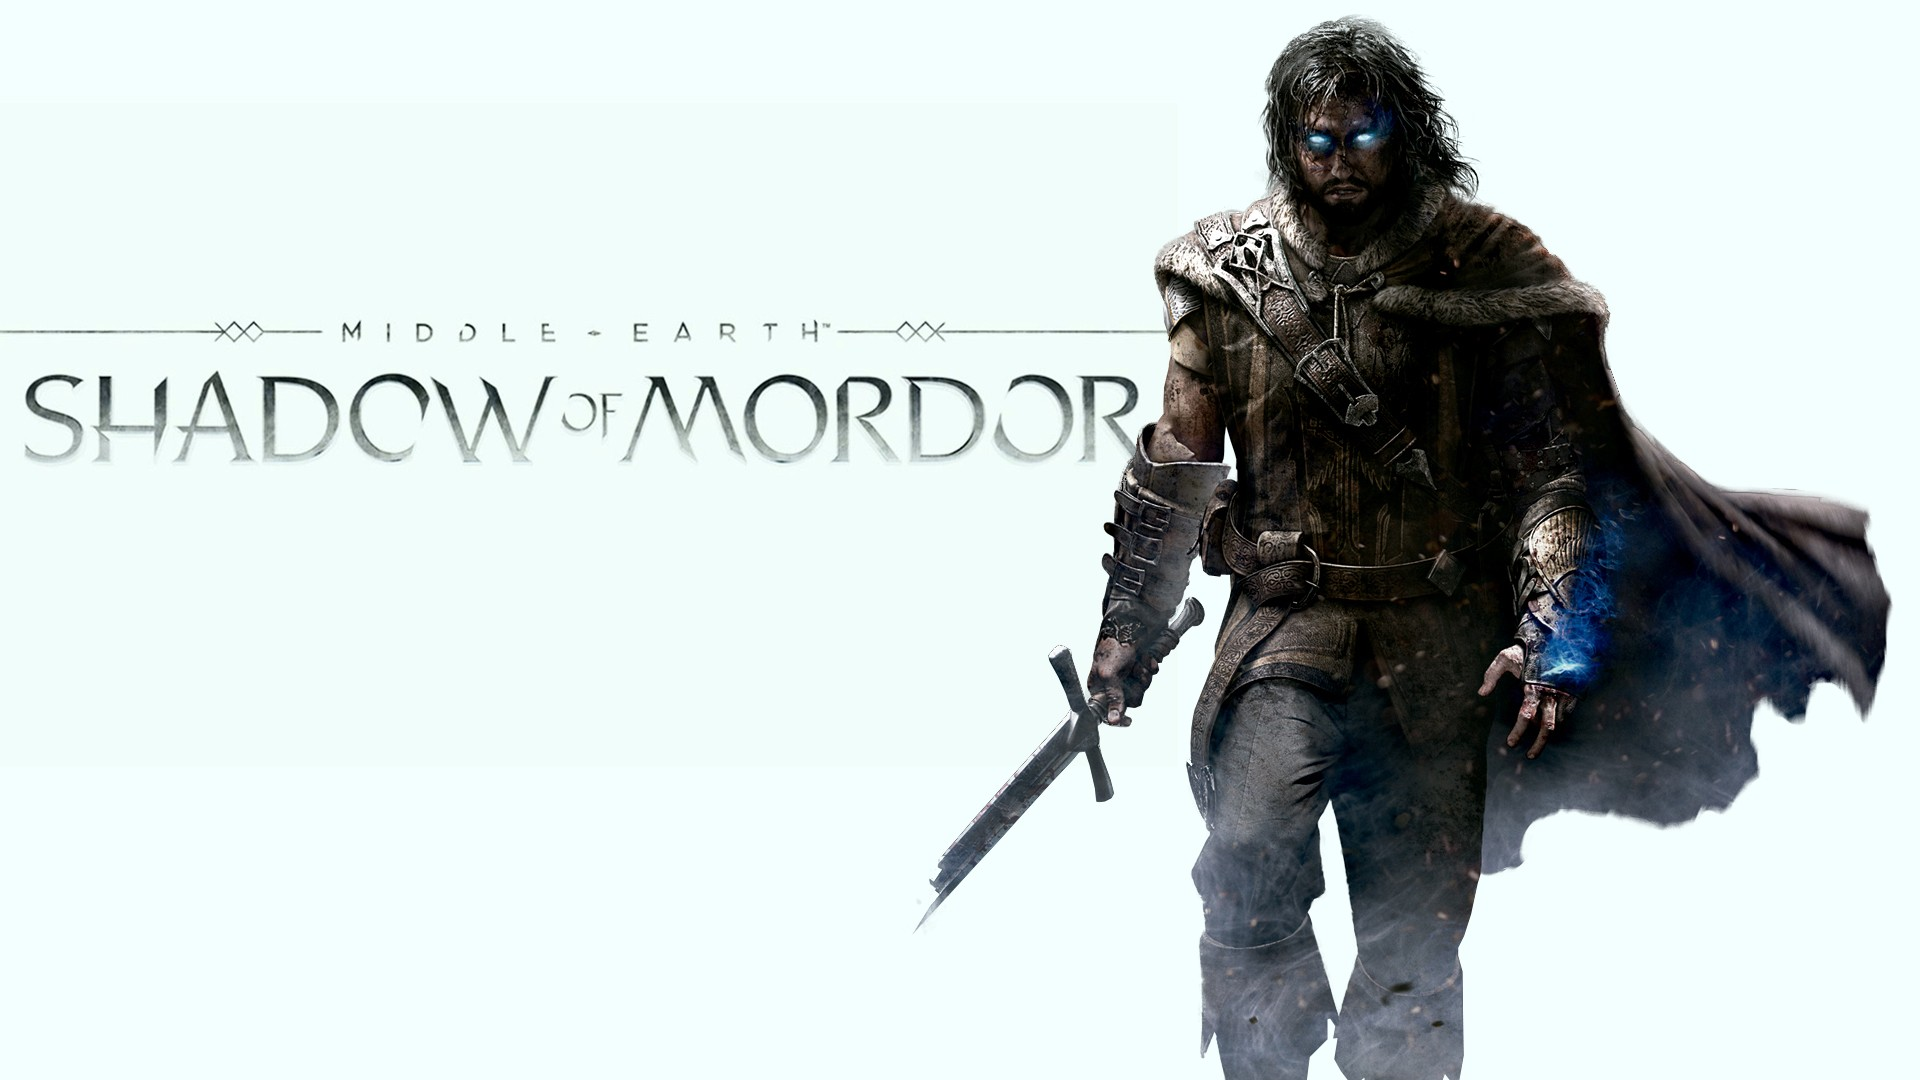 Middle-earth:Shadow of Mordor GOTY (Steam Gift RU&CIS)